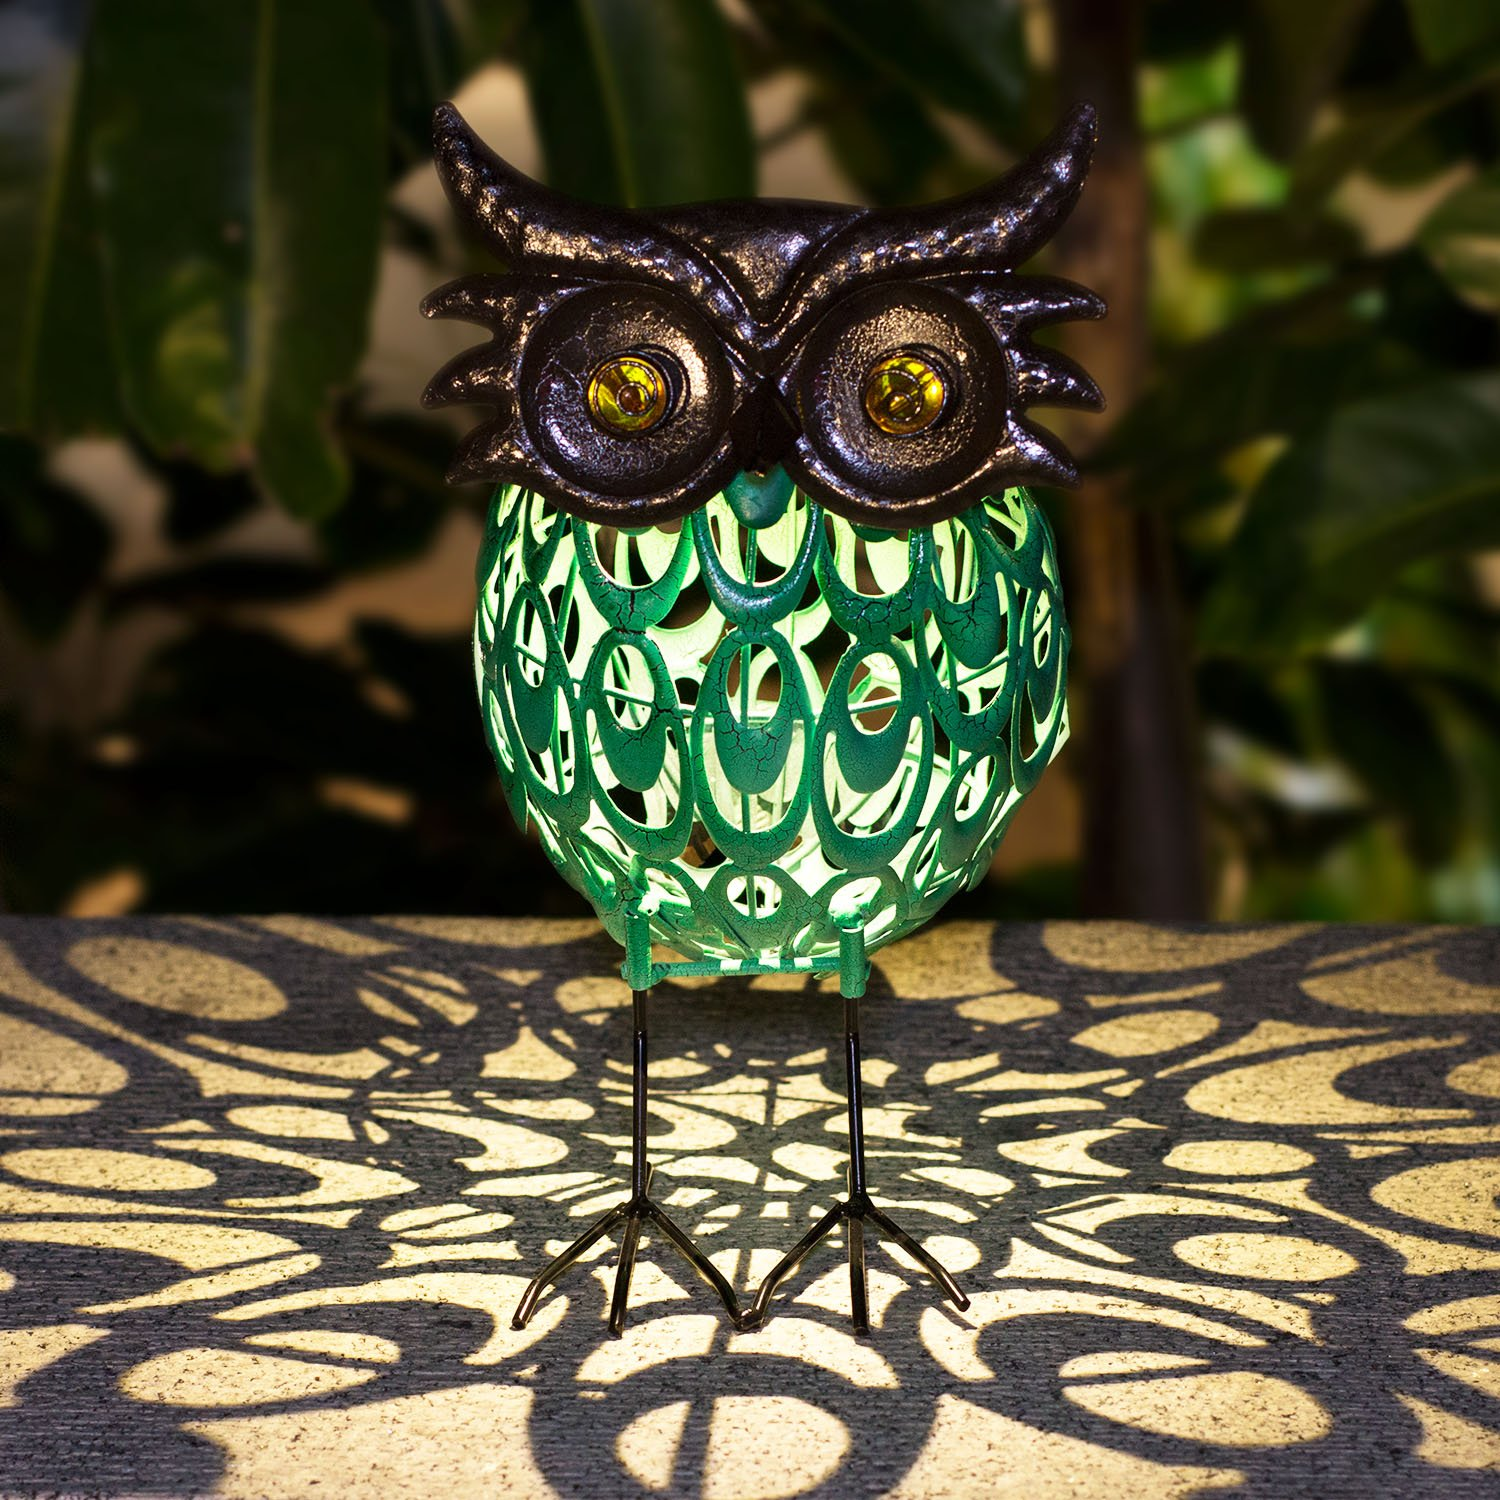 TAKEME Solar Lights Statue Outdoor Decor,Cute Owl Solar Light Figurines Decorative Metal Warm White LED Decorative Lights for Patio,Lawn,Party